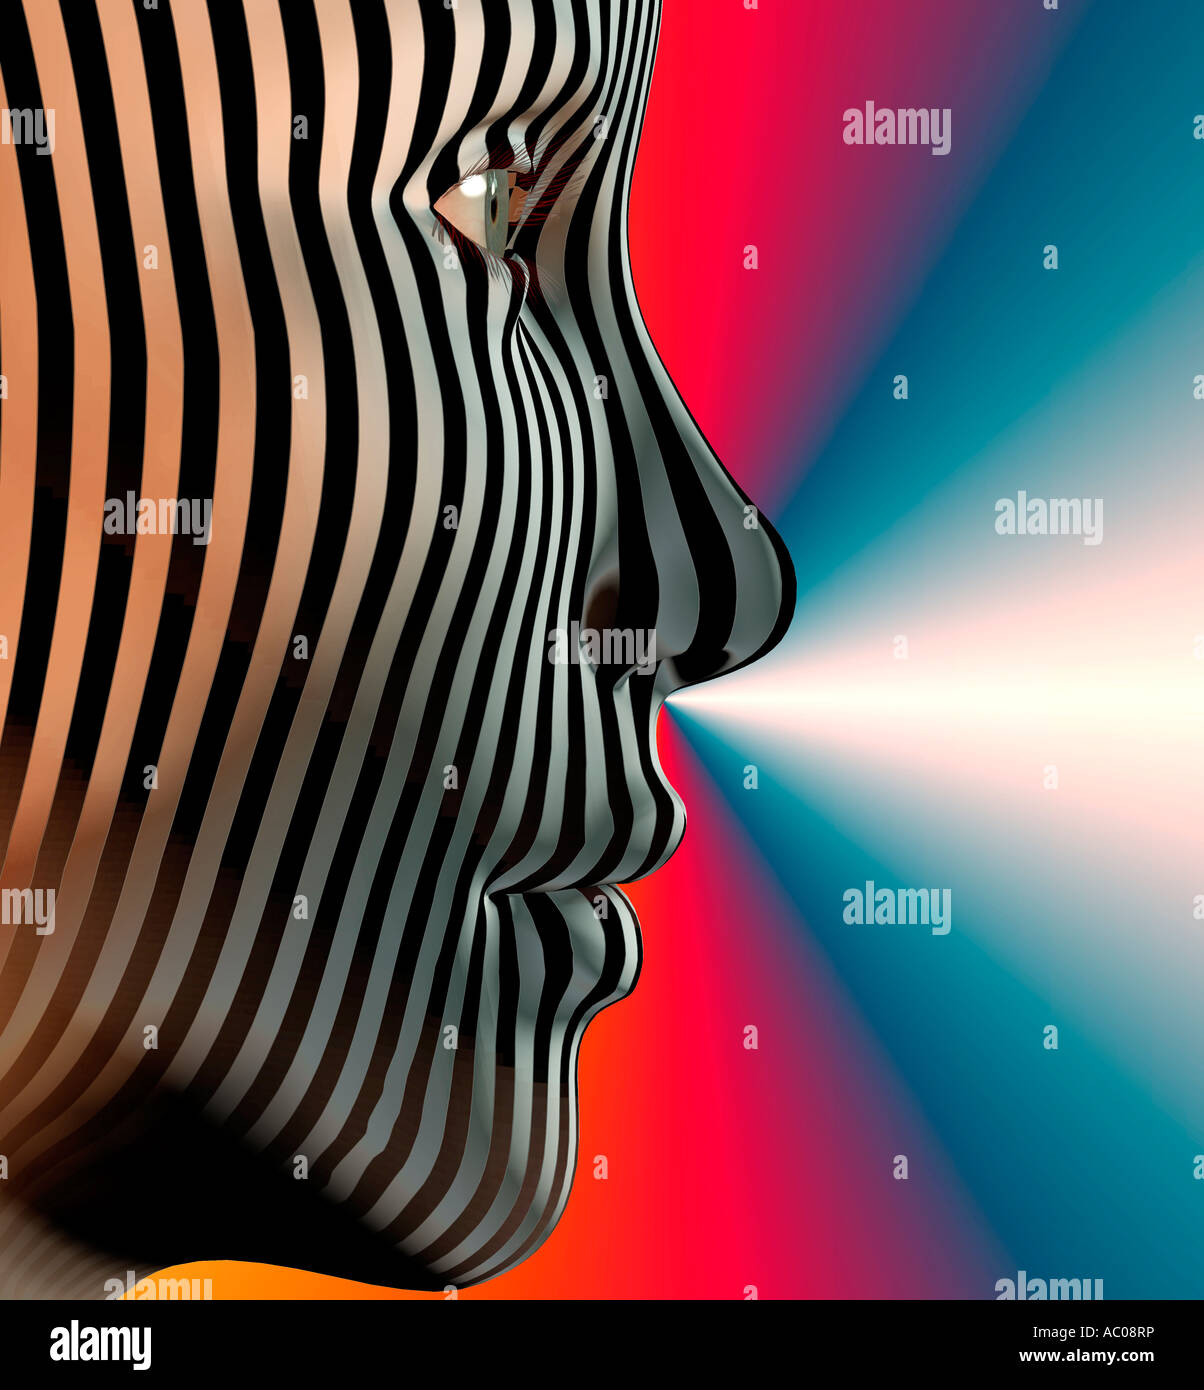 computer generated robot female head in 3D with stripes composited on face - Stock Image